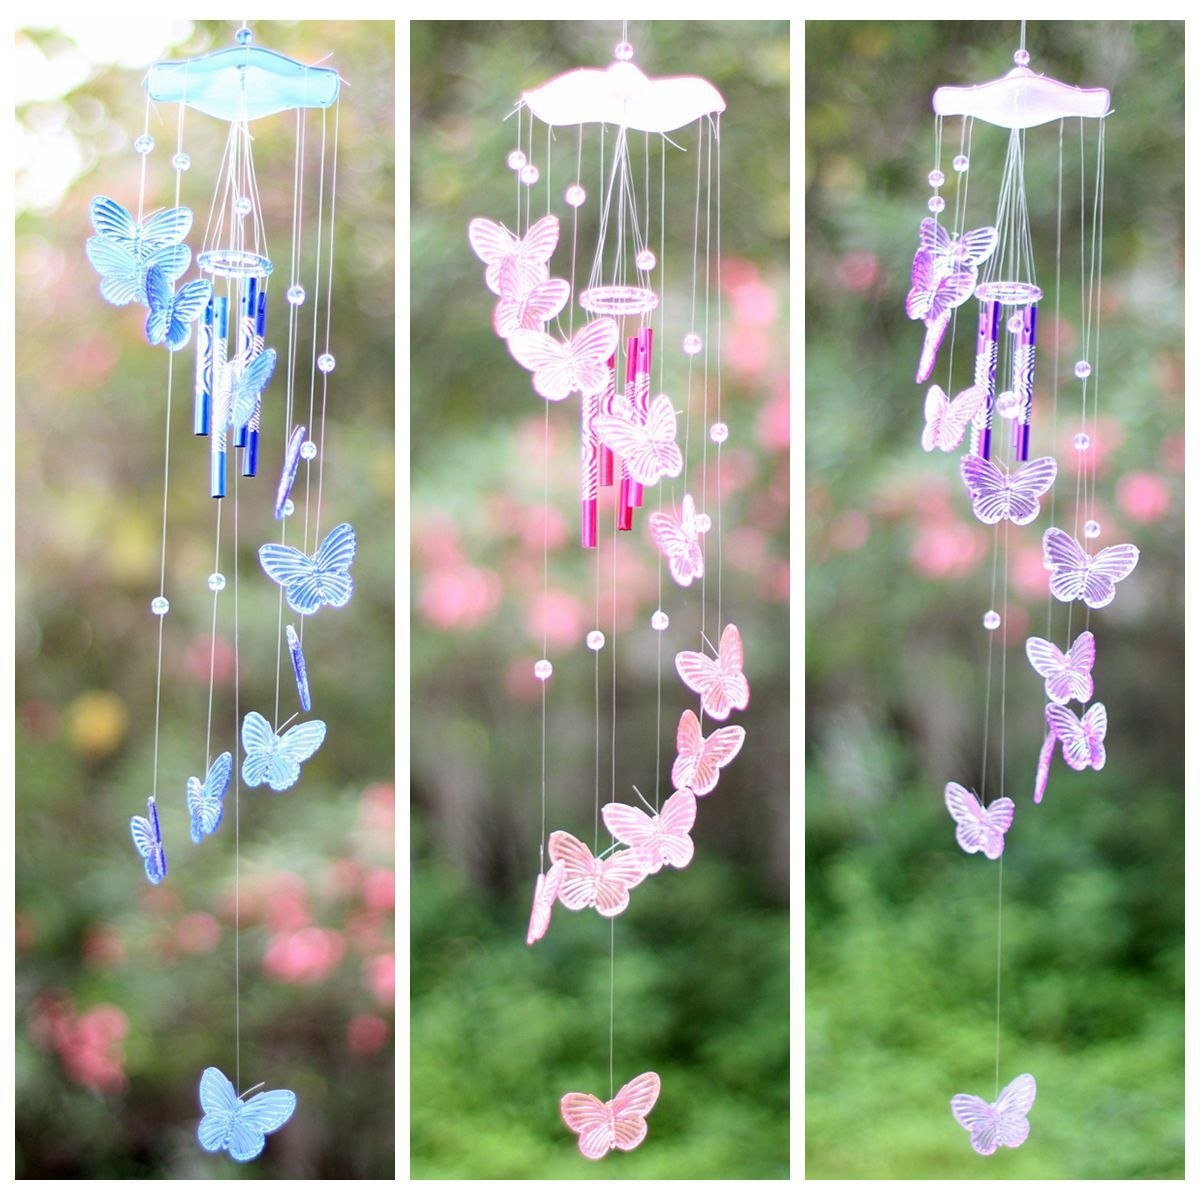 Home Decor Latest Collection Of Butterfly 4 Tubes Wind Chime Bell Home Ornament Church Hanging Garden Yard Decor